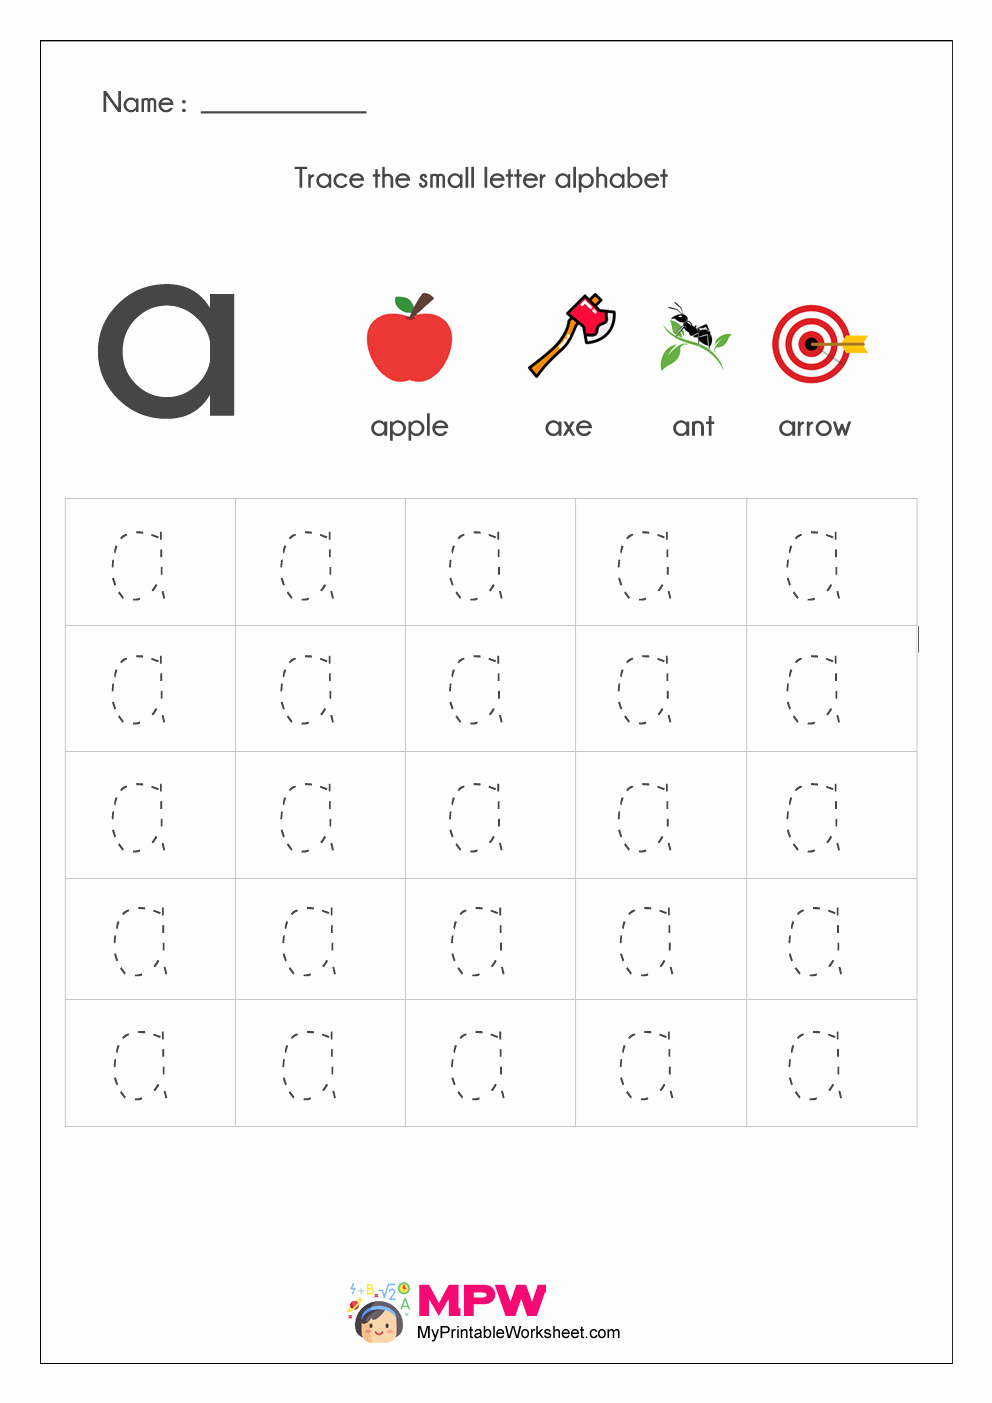 Letter A Printable Worksheets Of Small Letter Alphabets Tracing and Writing Worksheets Printable